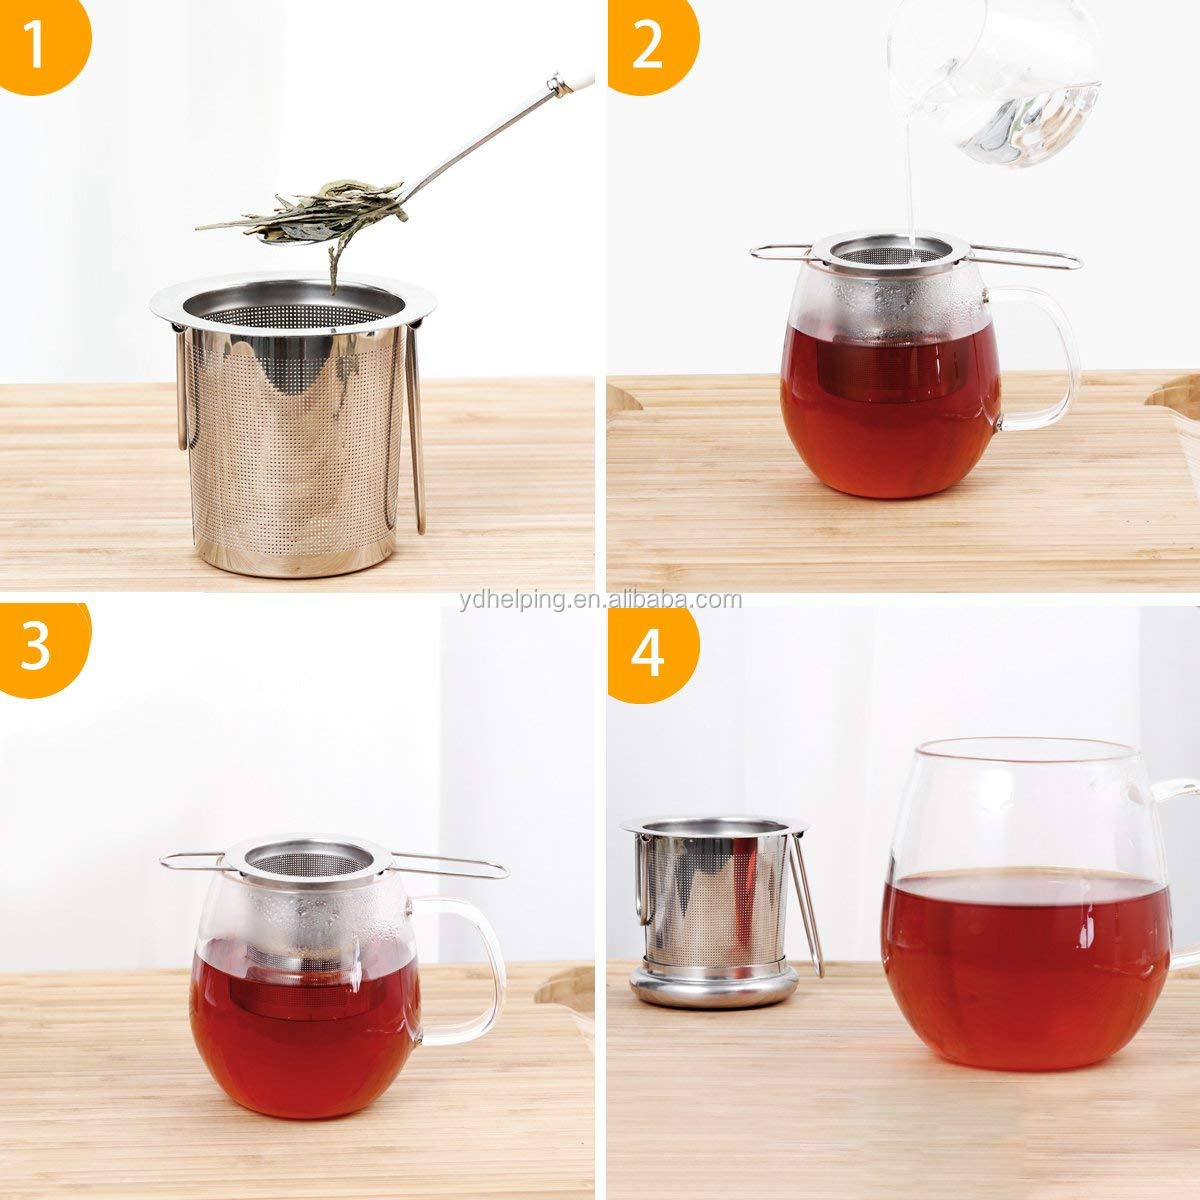 Tea Infuser 304 Stainless Steel Including 2 Mesh Tea Strainer & 1 Scoop with Double Folding Handles for Hanging on Teapots, Mugs